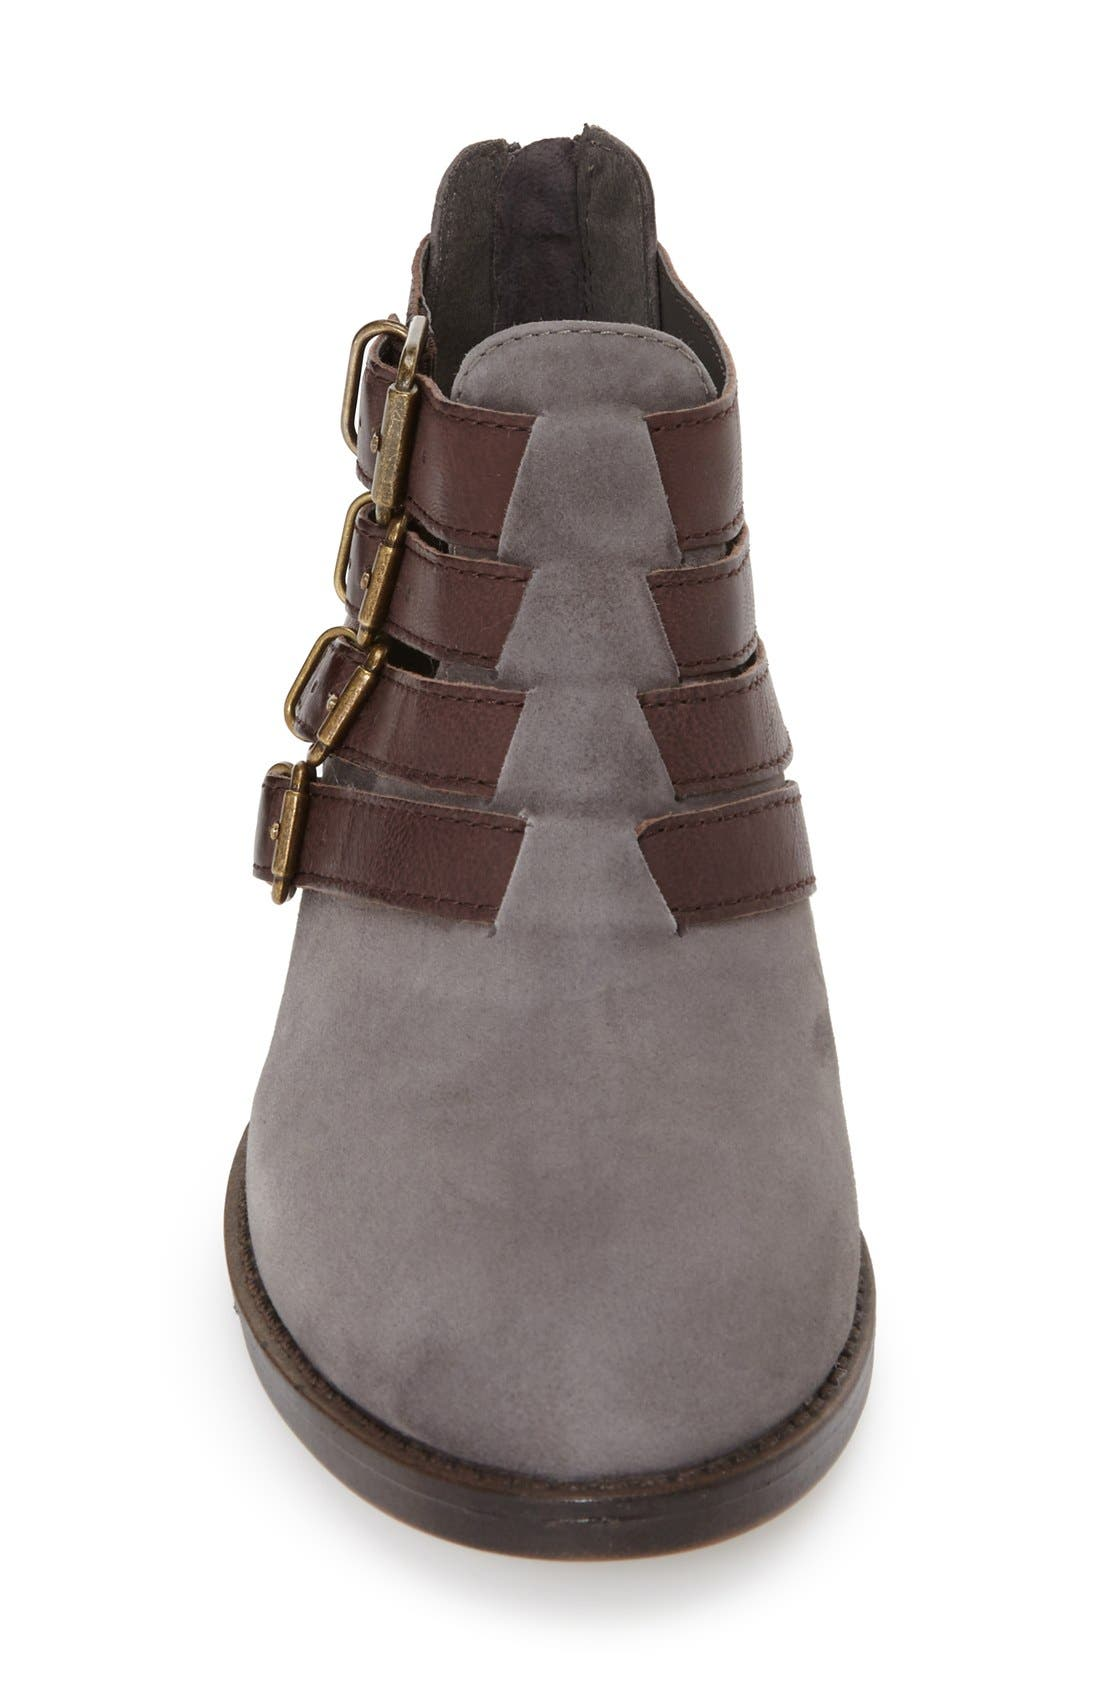 'Ronan' Buckle Leather Bootie,                             Alternate thumbnail 4, color,                             Grey Suede/ Chestnut